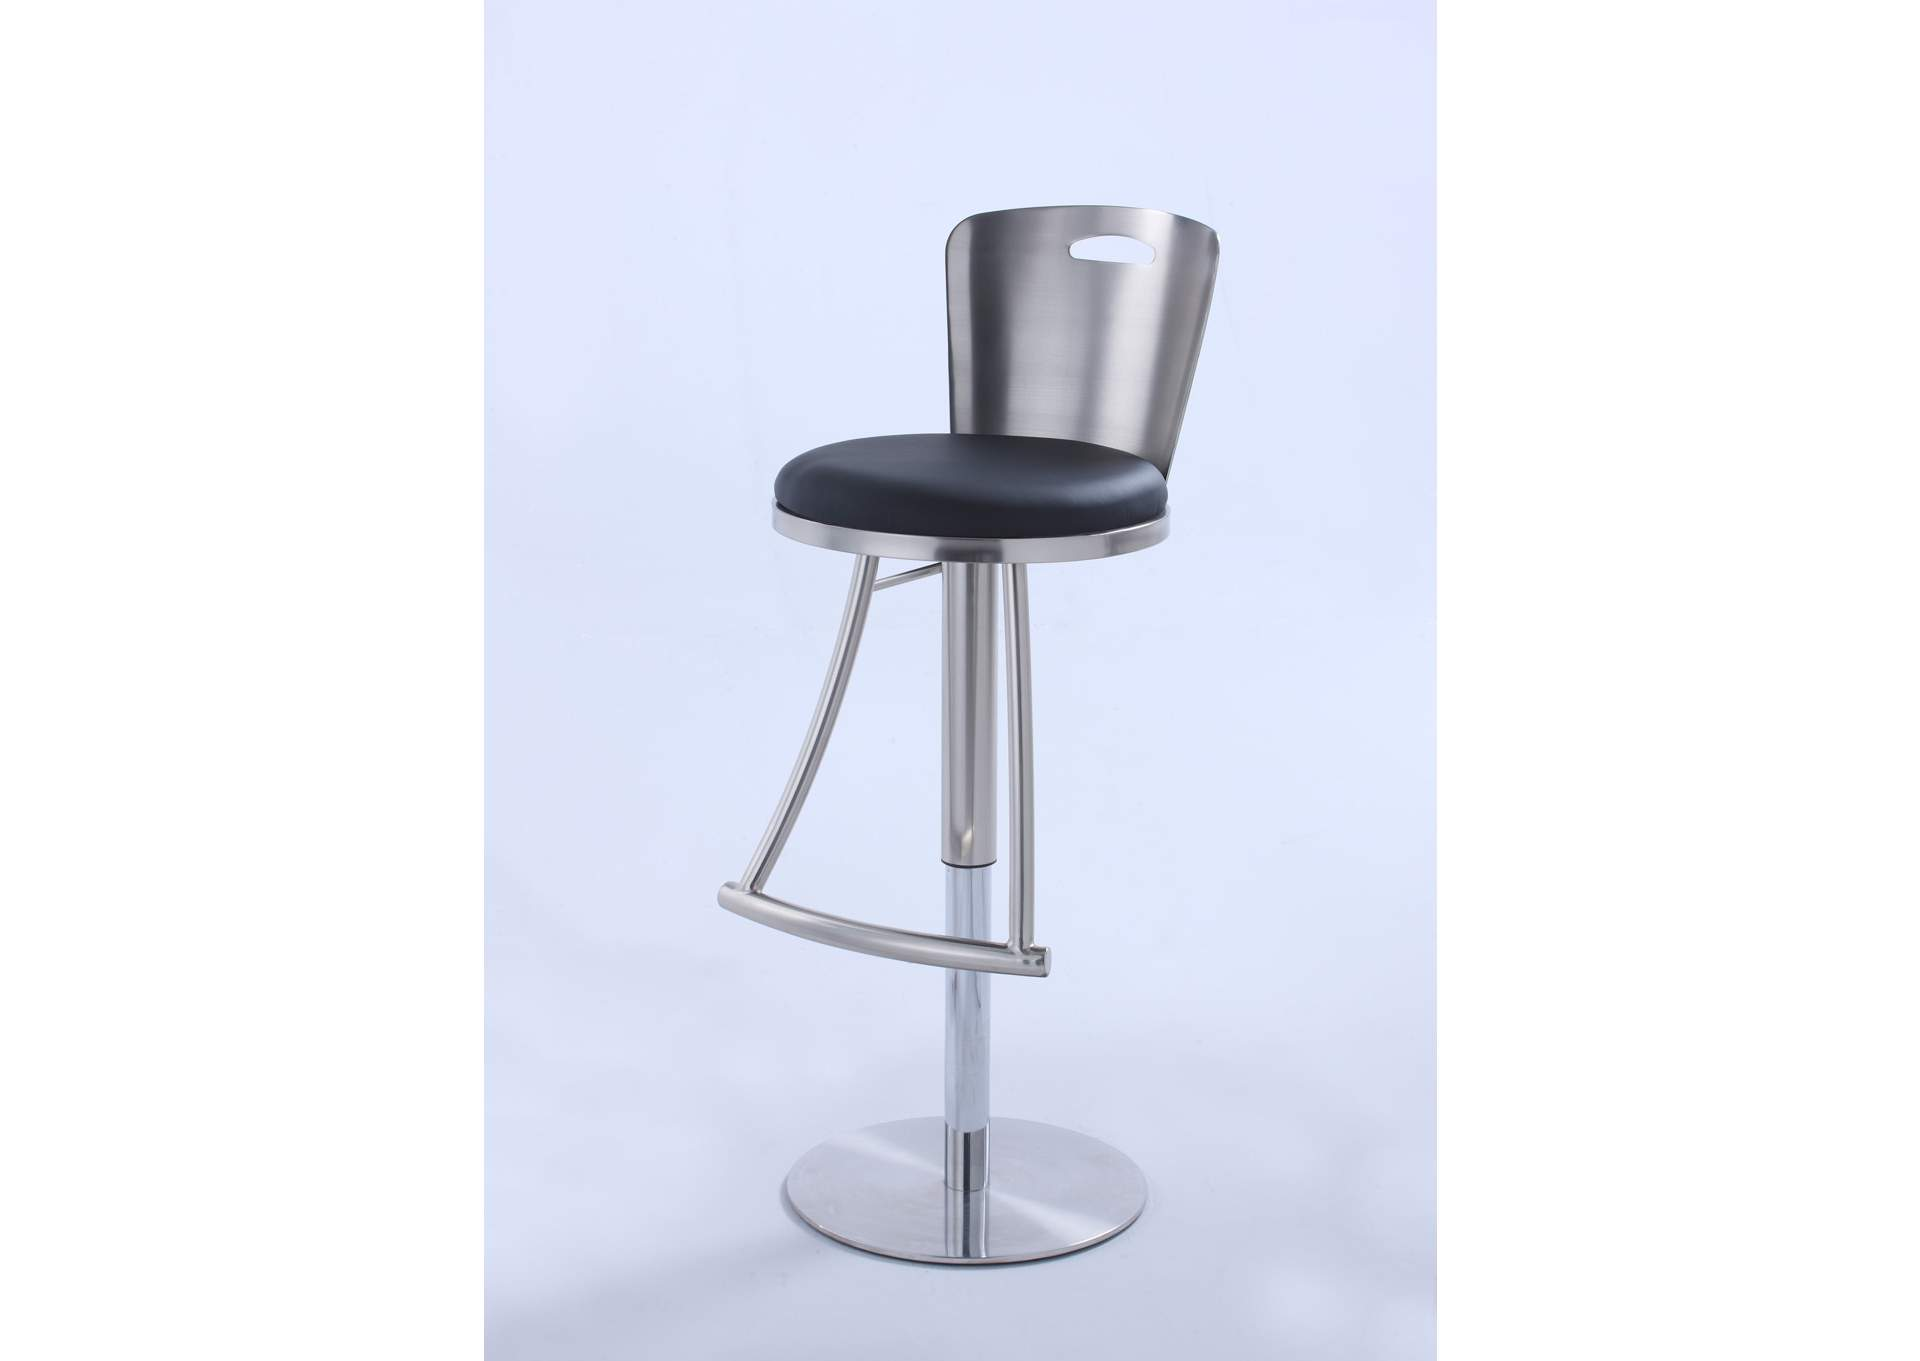 Nickel Metal-Back Adjustable Height Stool,Chintaly Imports